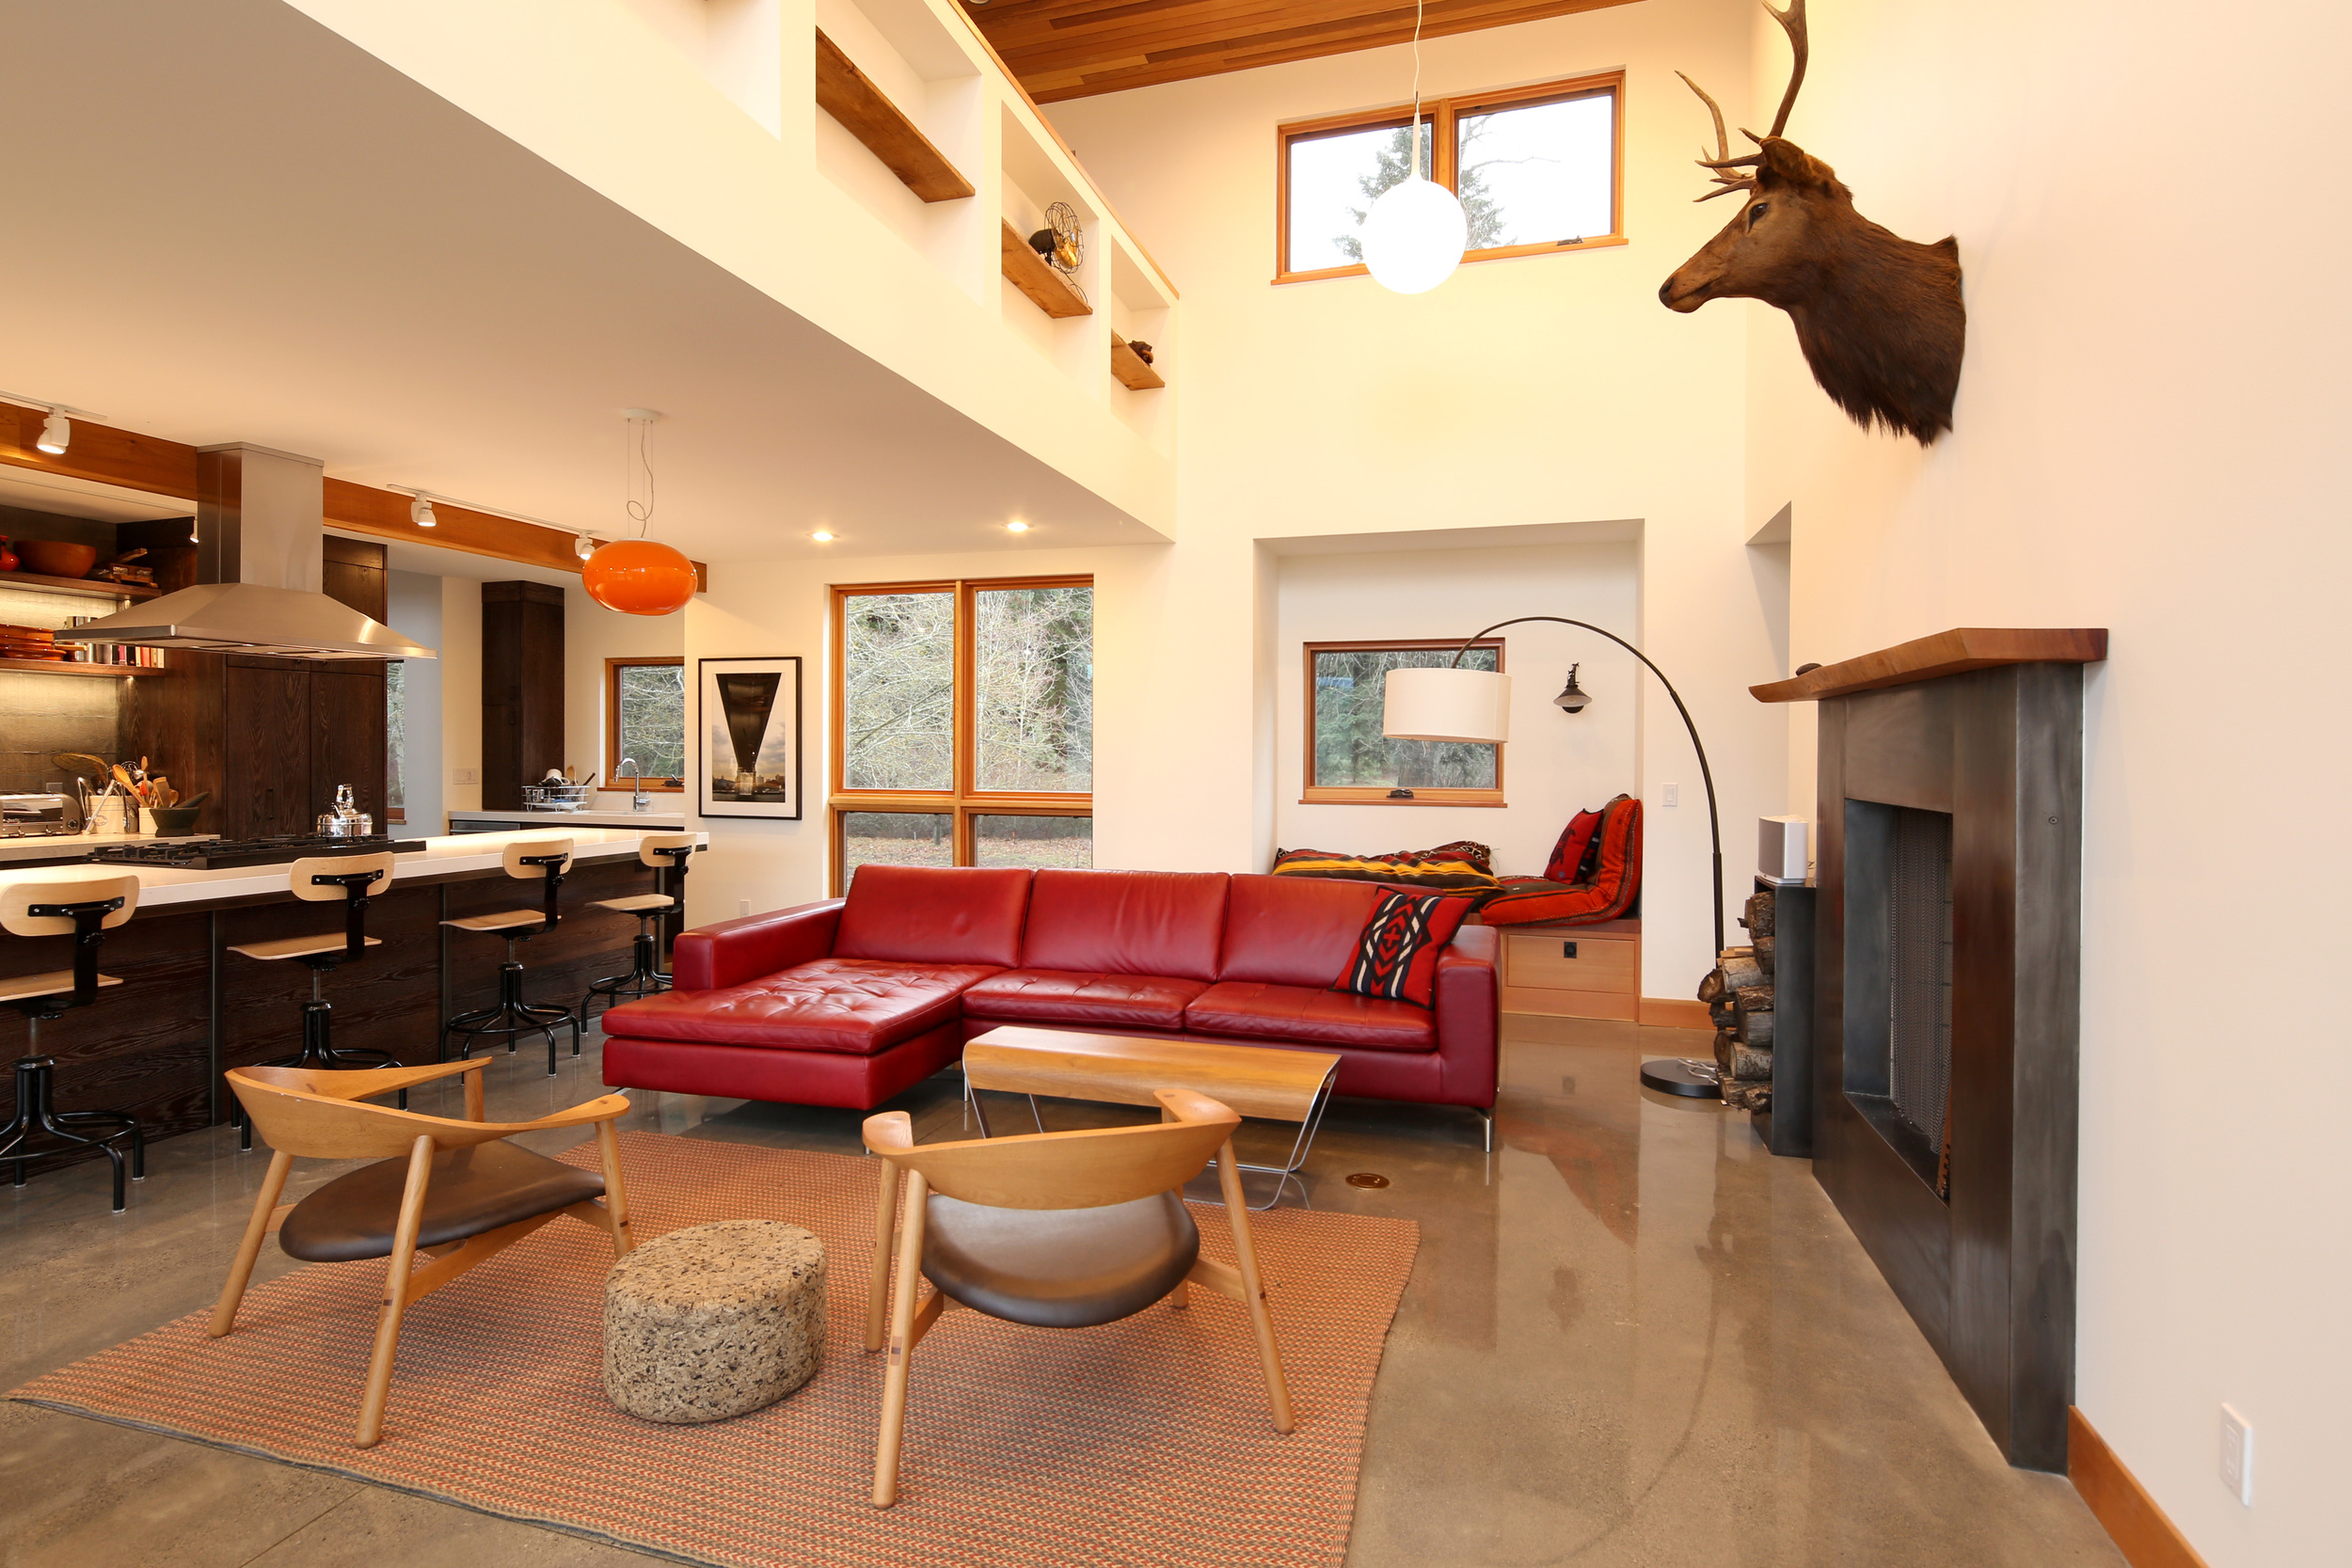 Trout living room.JPG